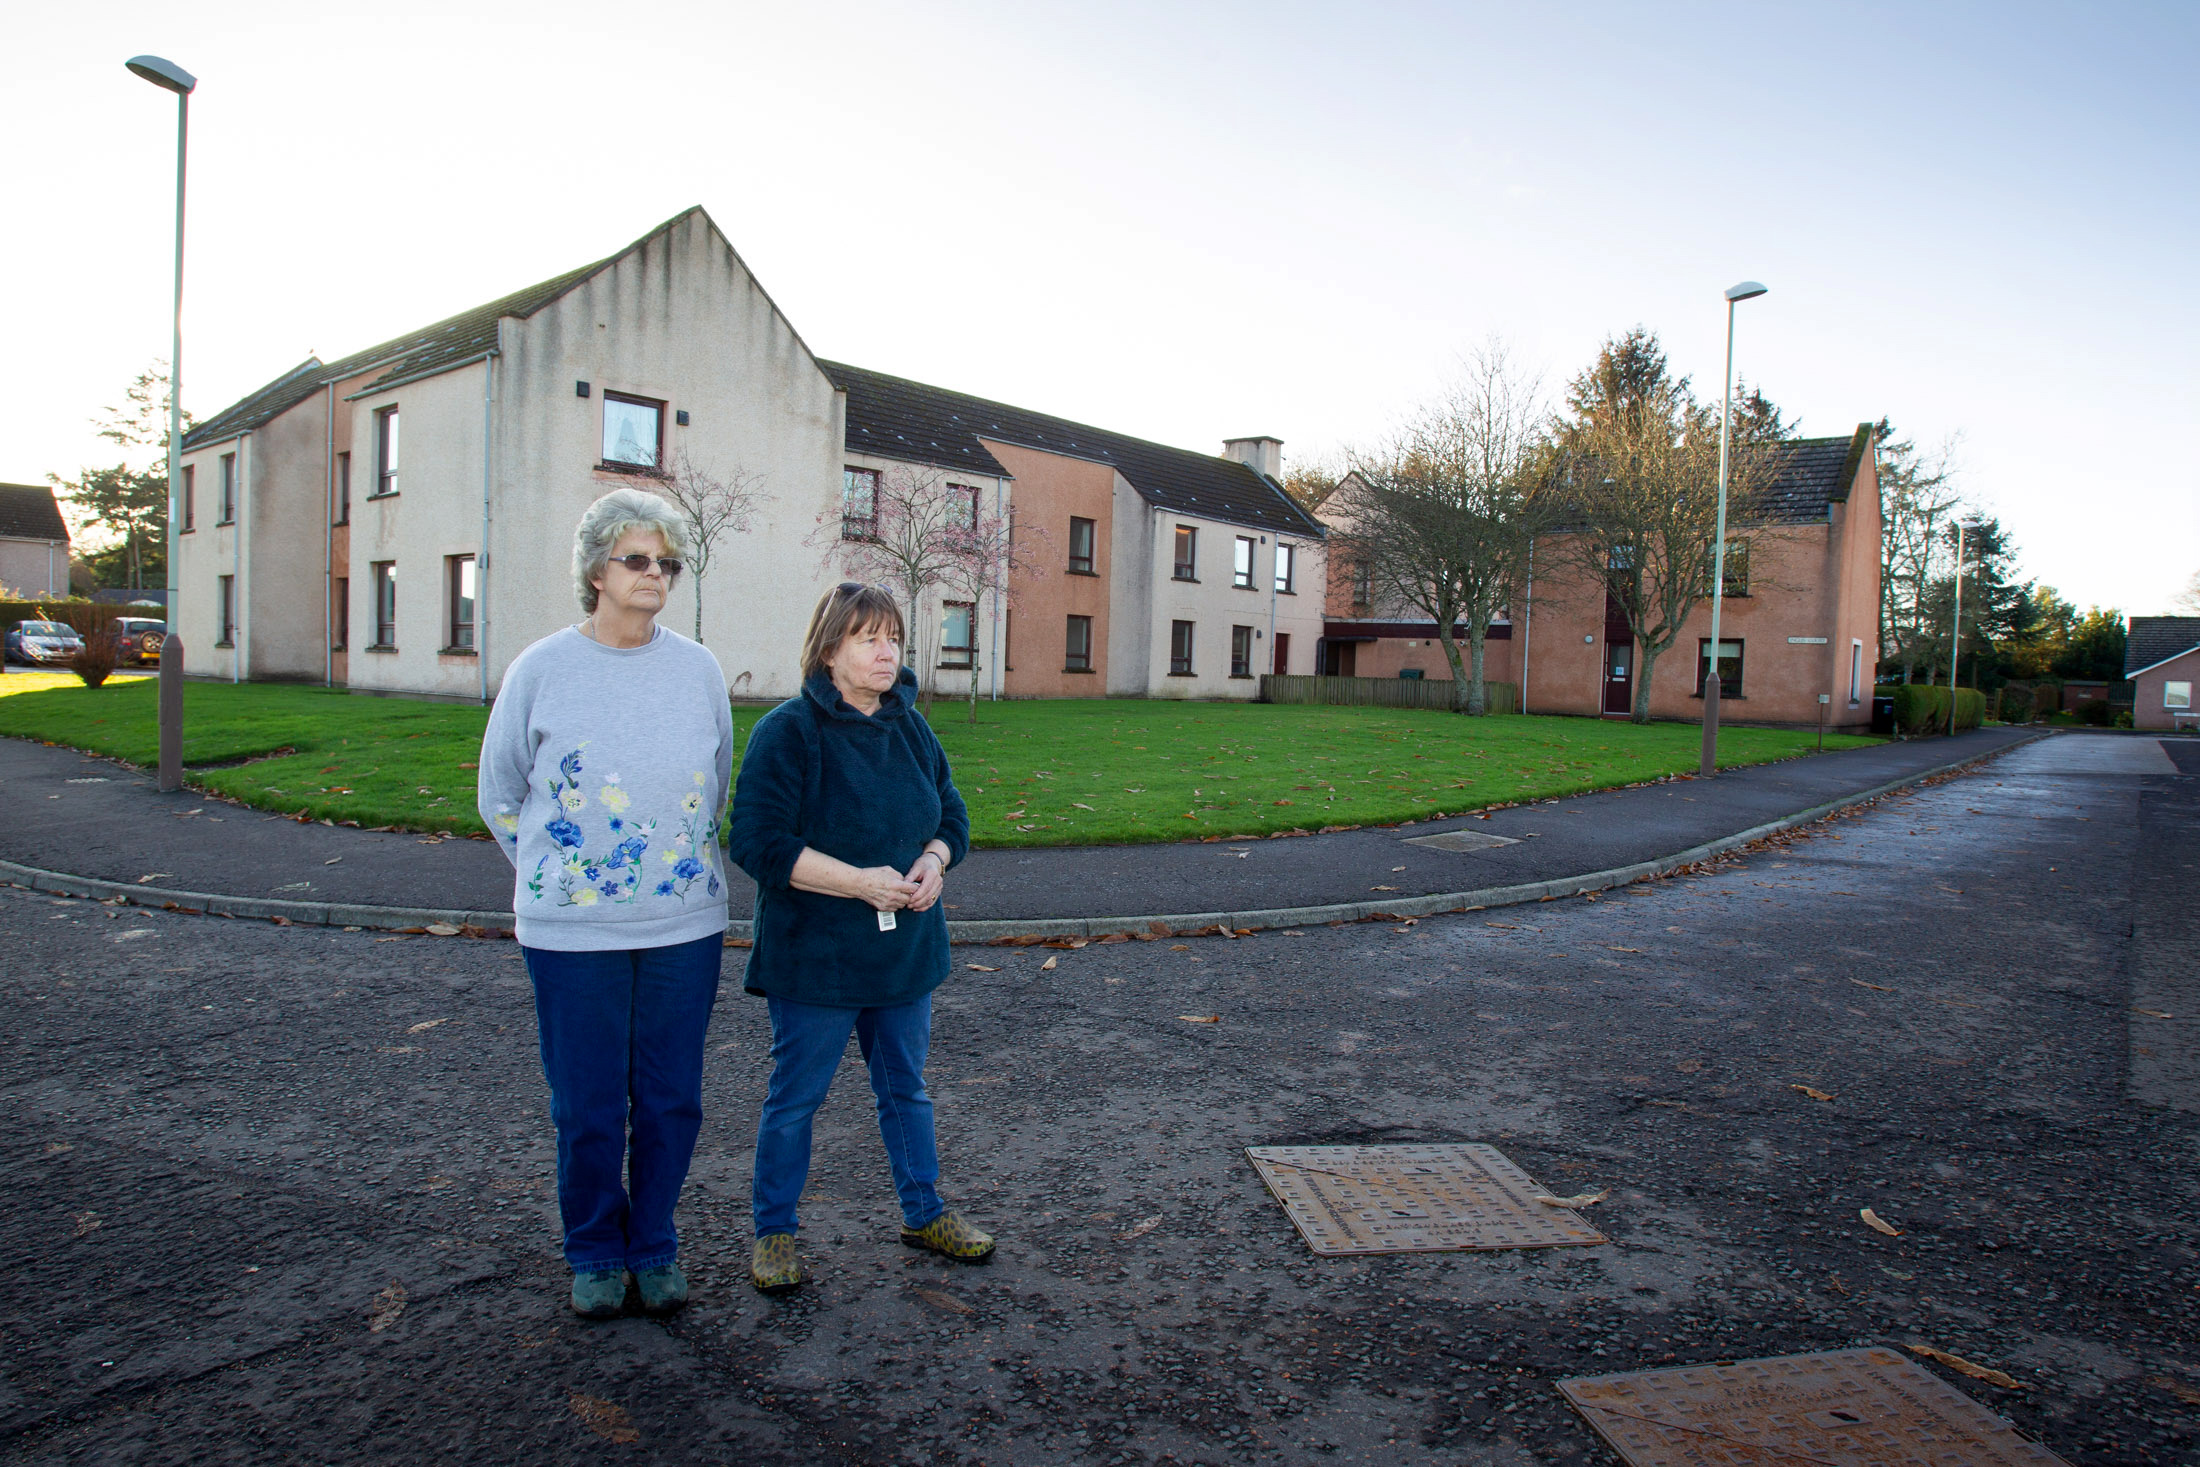 "Residents Beth Smith (left) and Renata Ralph remain at Inglis Court.   ....Pic Paul Reid  Remaining residents of Inglis Court in Edzell say they have been left in the dark over the plans for the programme to replace the sheltered housing scheme with 20 new homes. In October 2018 the tenants were promised a ""bespoke service"" to find them alternative homes in advance of the housing being demolished, but are now facing a second Christmas without having been offered suitable accommodation. Council say their plans remain on track with demolition due to start next year."